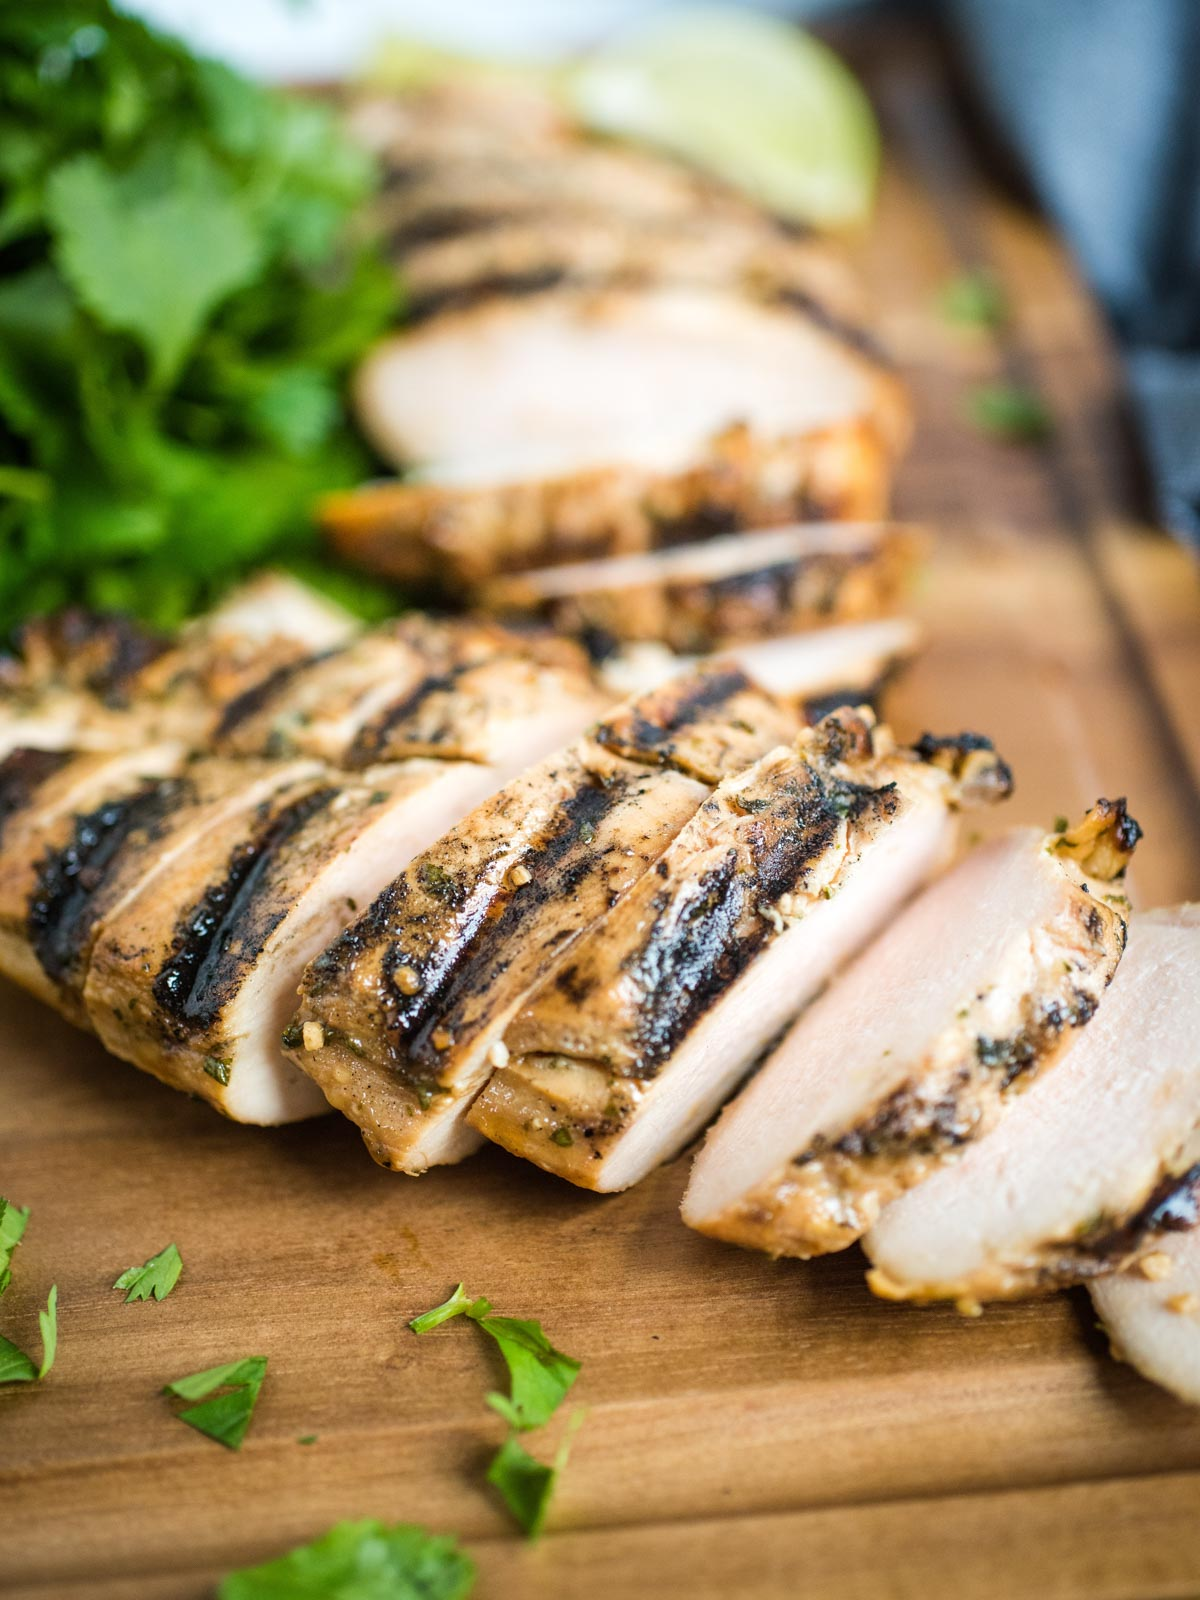 sliced grilled chicken on cutting board